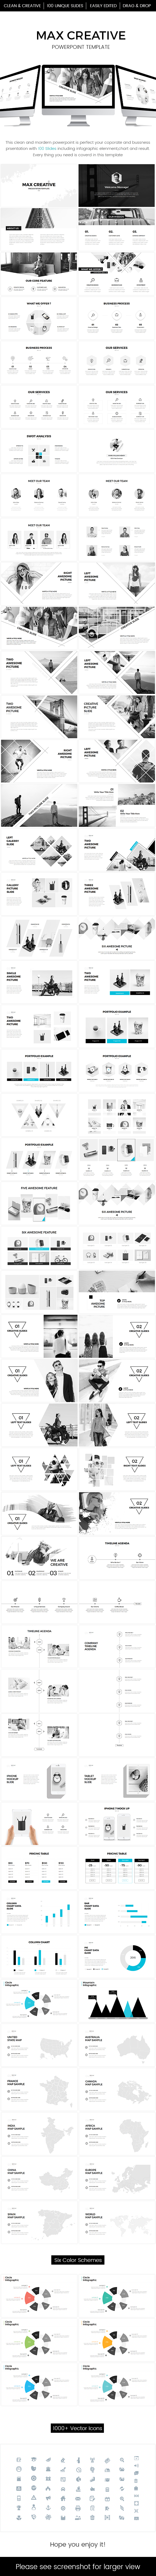 Max Creative Powerpoint Template - PowerPoint Templates Presentation Templates